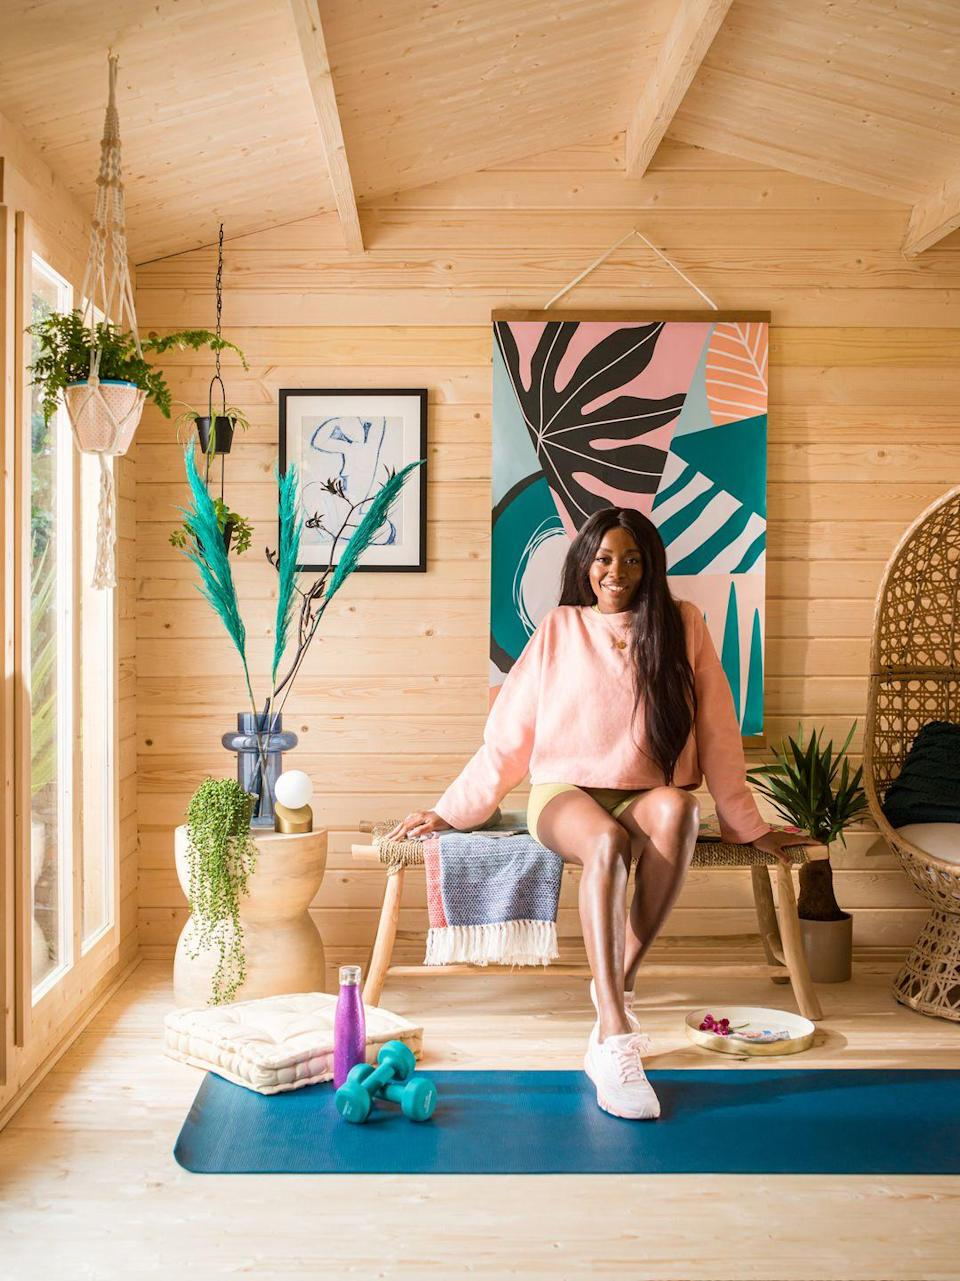 <p>'It was a must-have for me to have a space where I could unwind & do post workout stretches,' explains AJ. 'I'm planning to add some more gym equipment to maximise my workout area but I also want to incorporate a little bar area for summer BBQs – it's all about Yin & Yang.'</p>